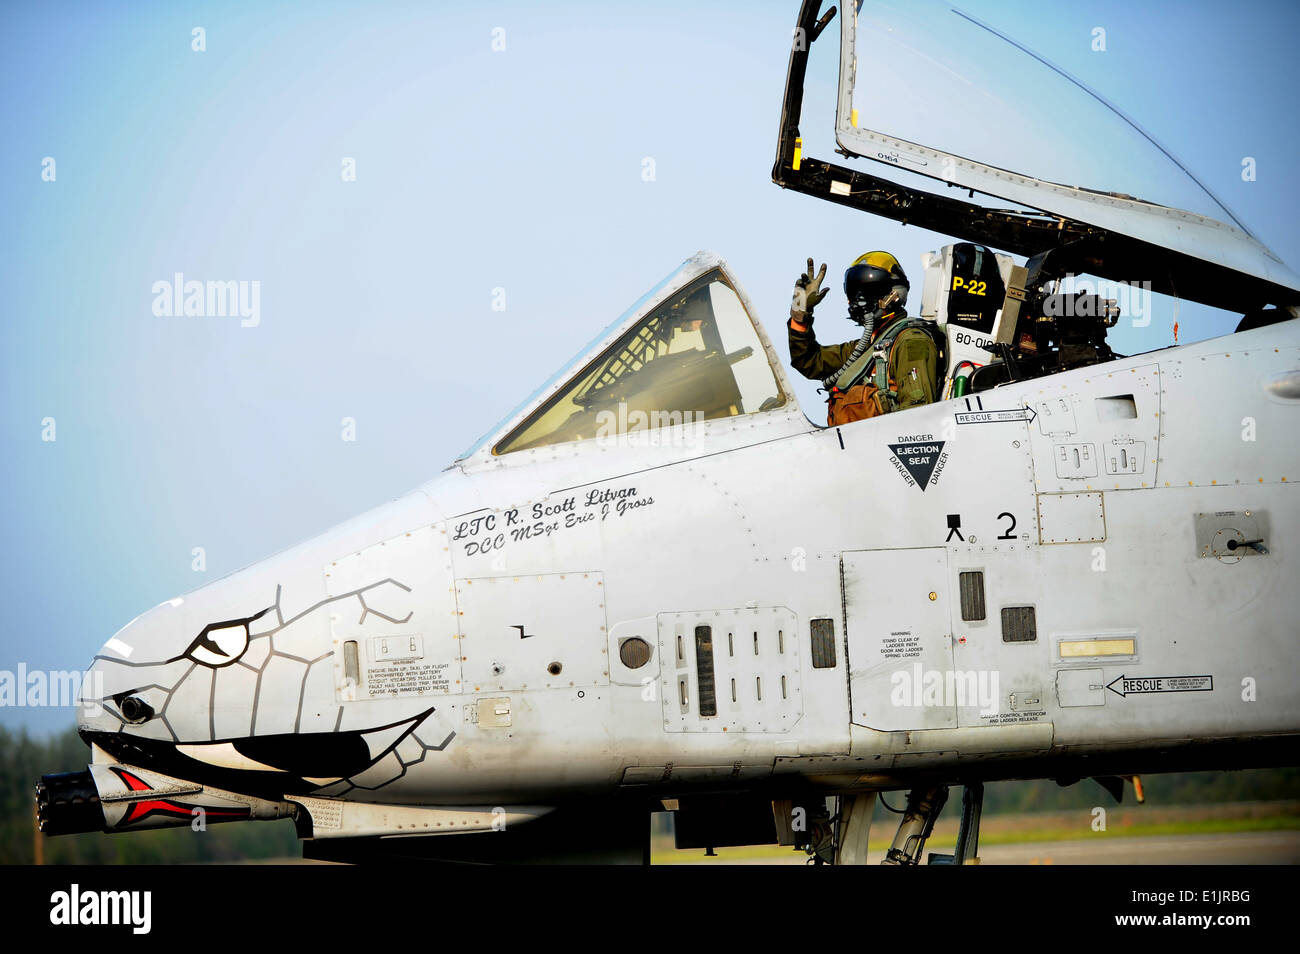 A U.S. Air Force A 10 Thunderbolt aircraft pilot assigned to the 163rd Fighter Squadron, Indiana Air National Guard waves as he